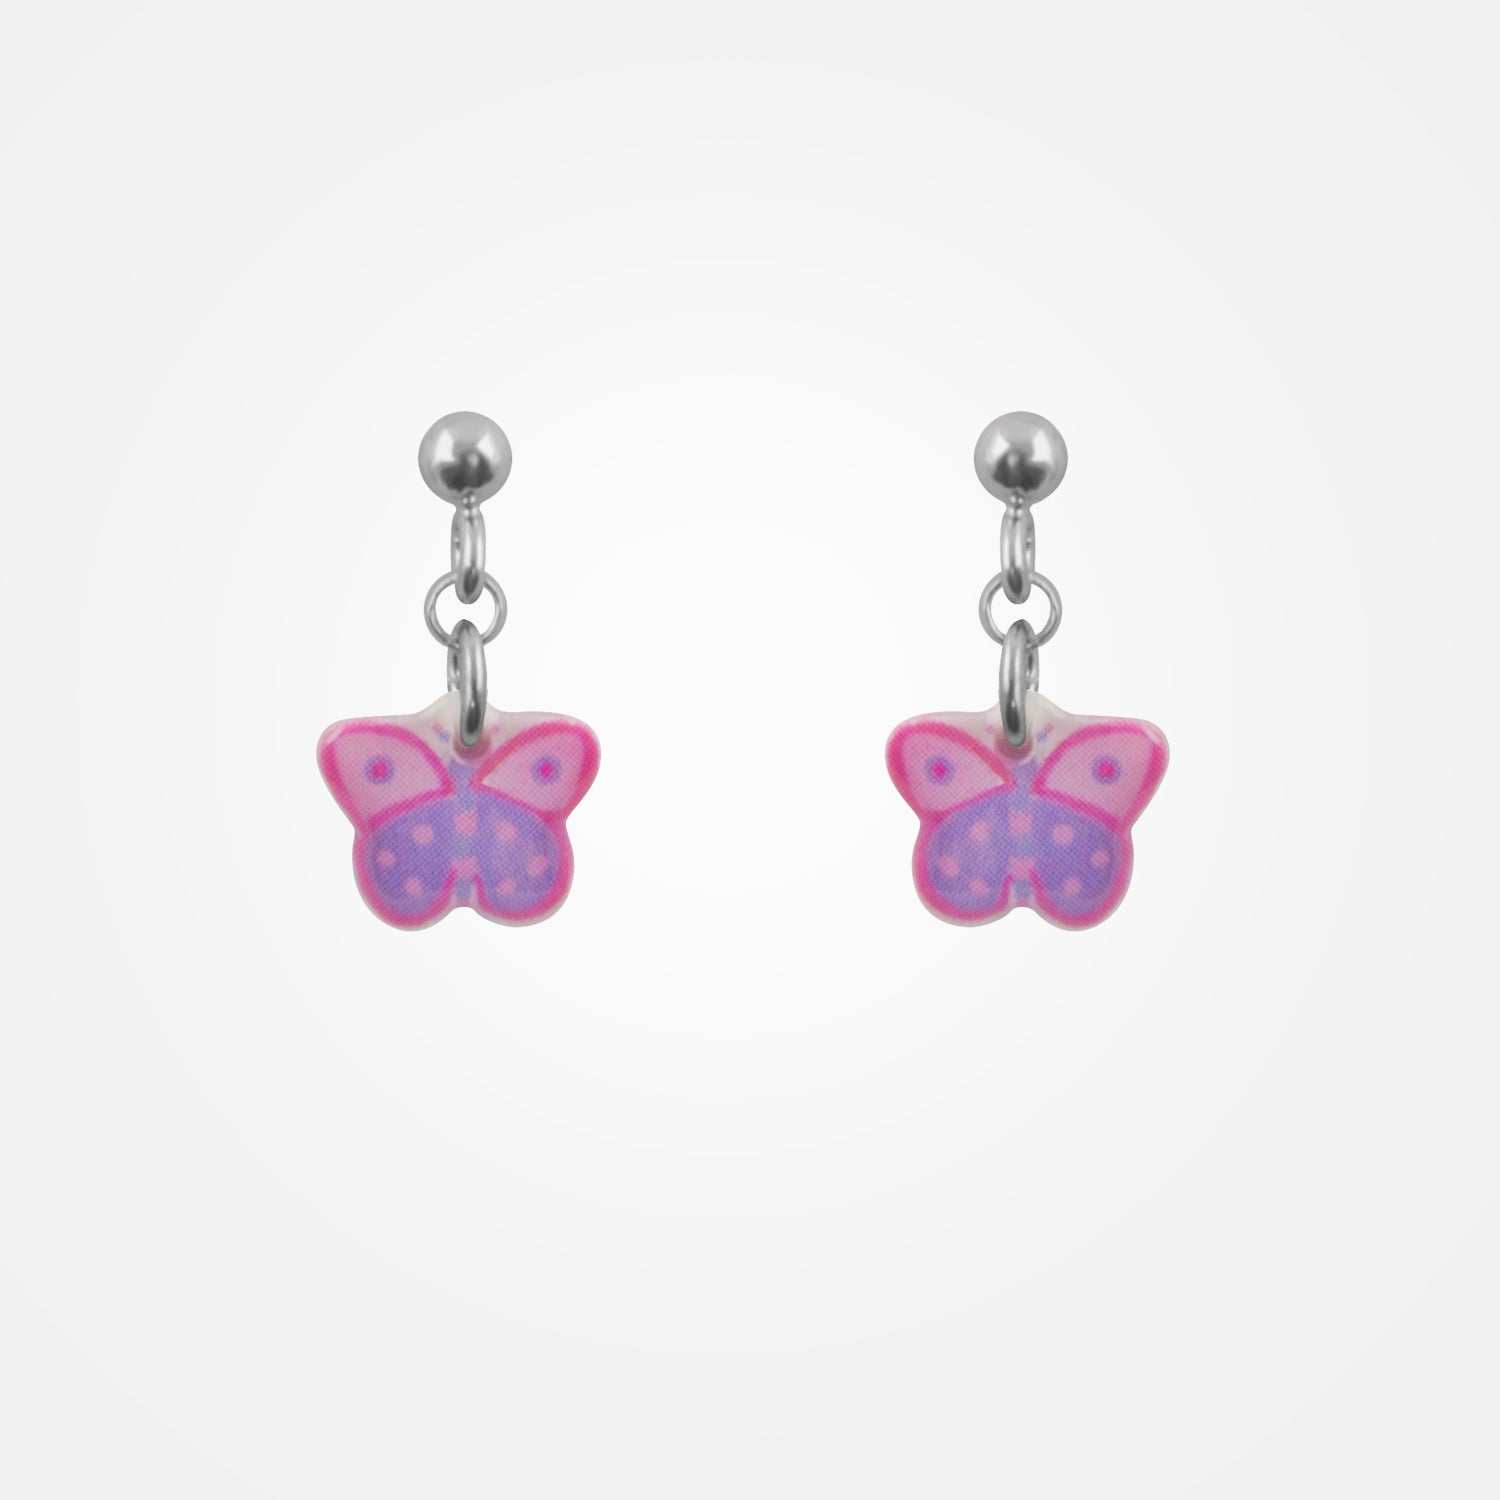 Hanging Butterfly Earrings by Ribambelle